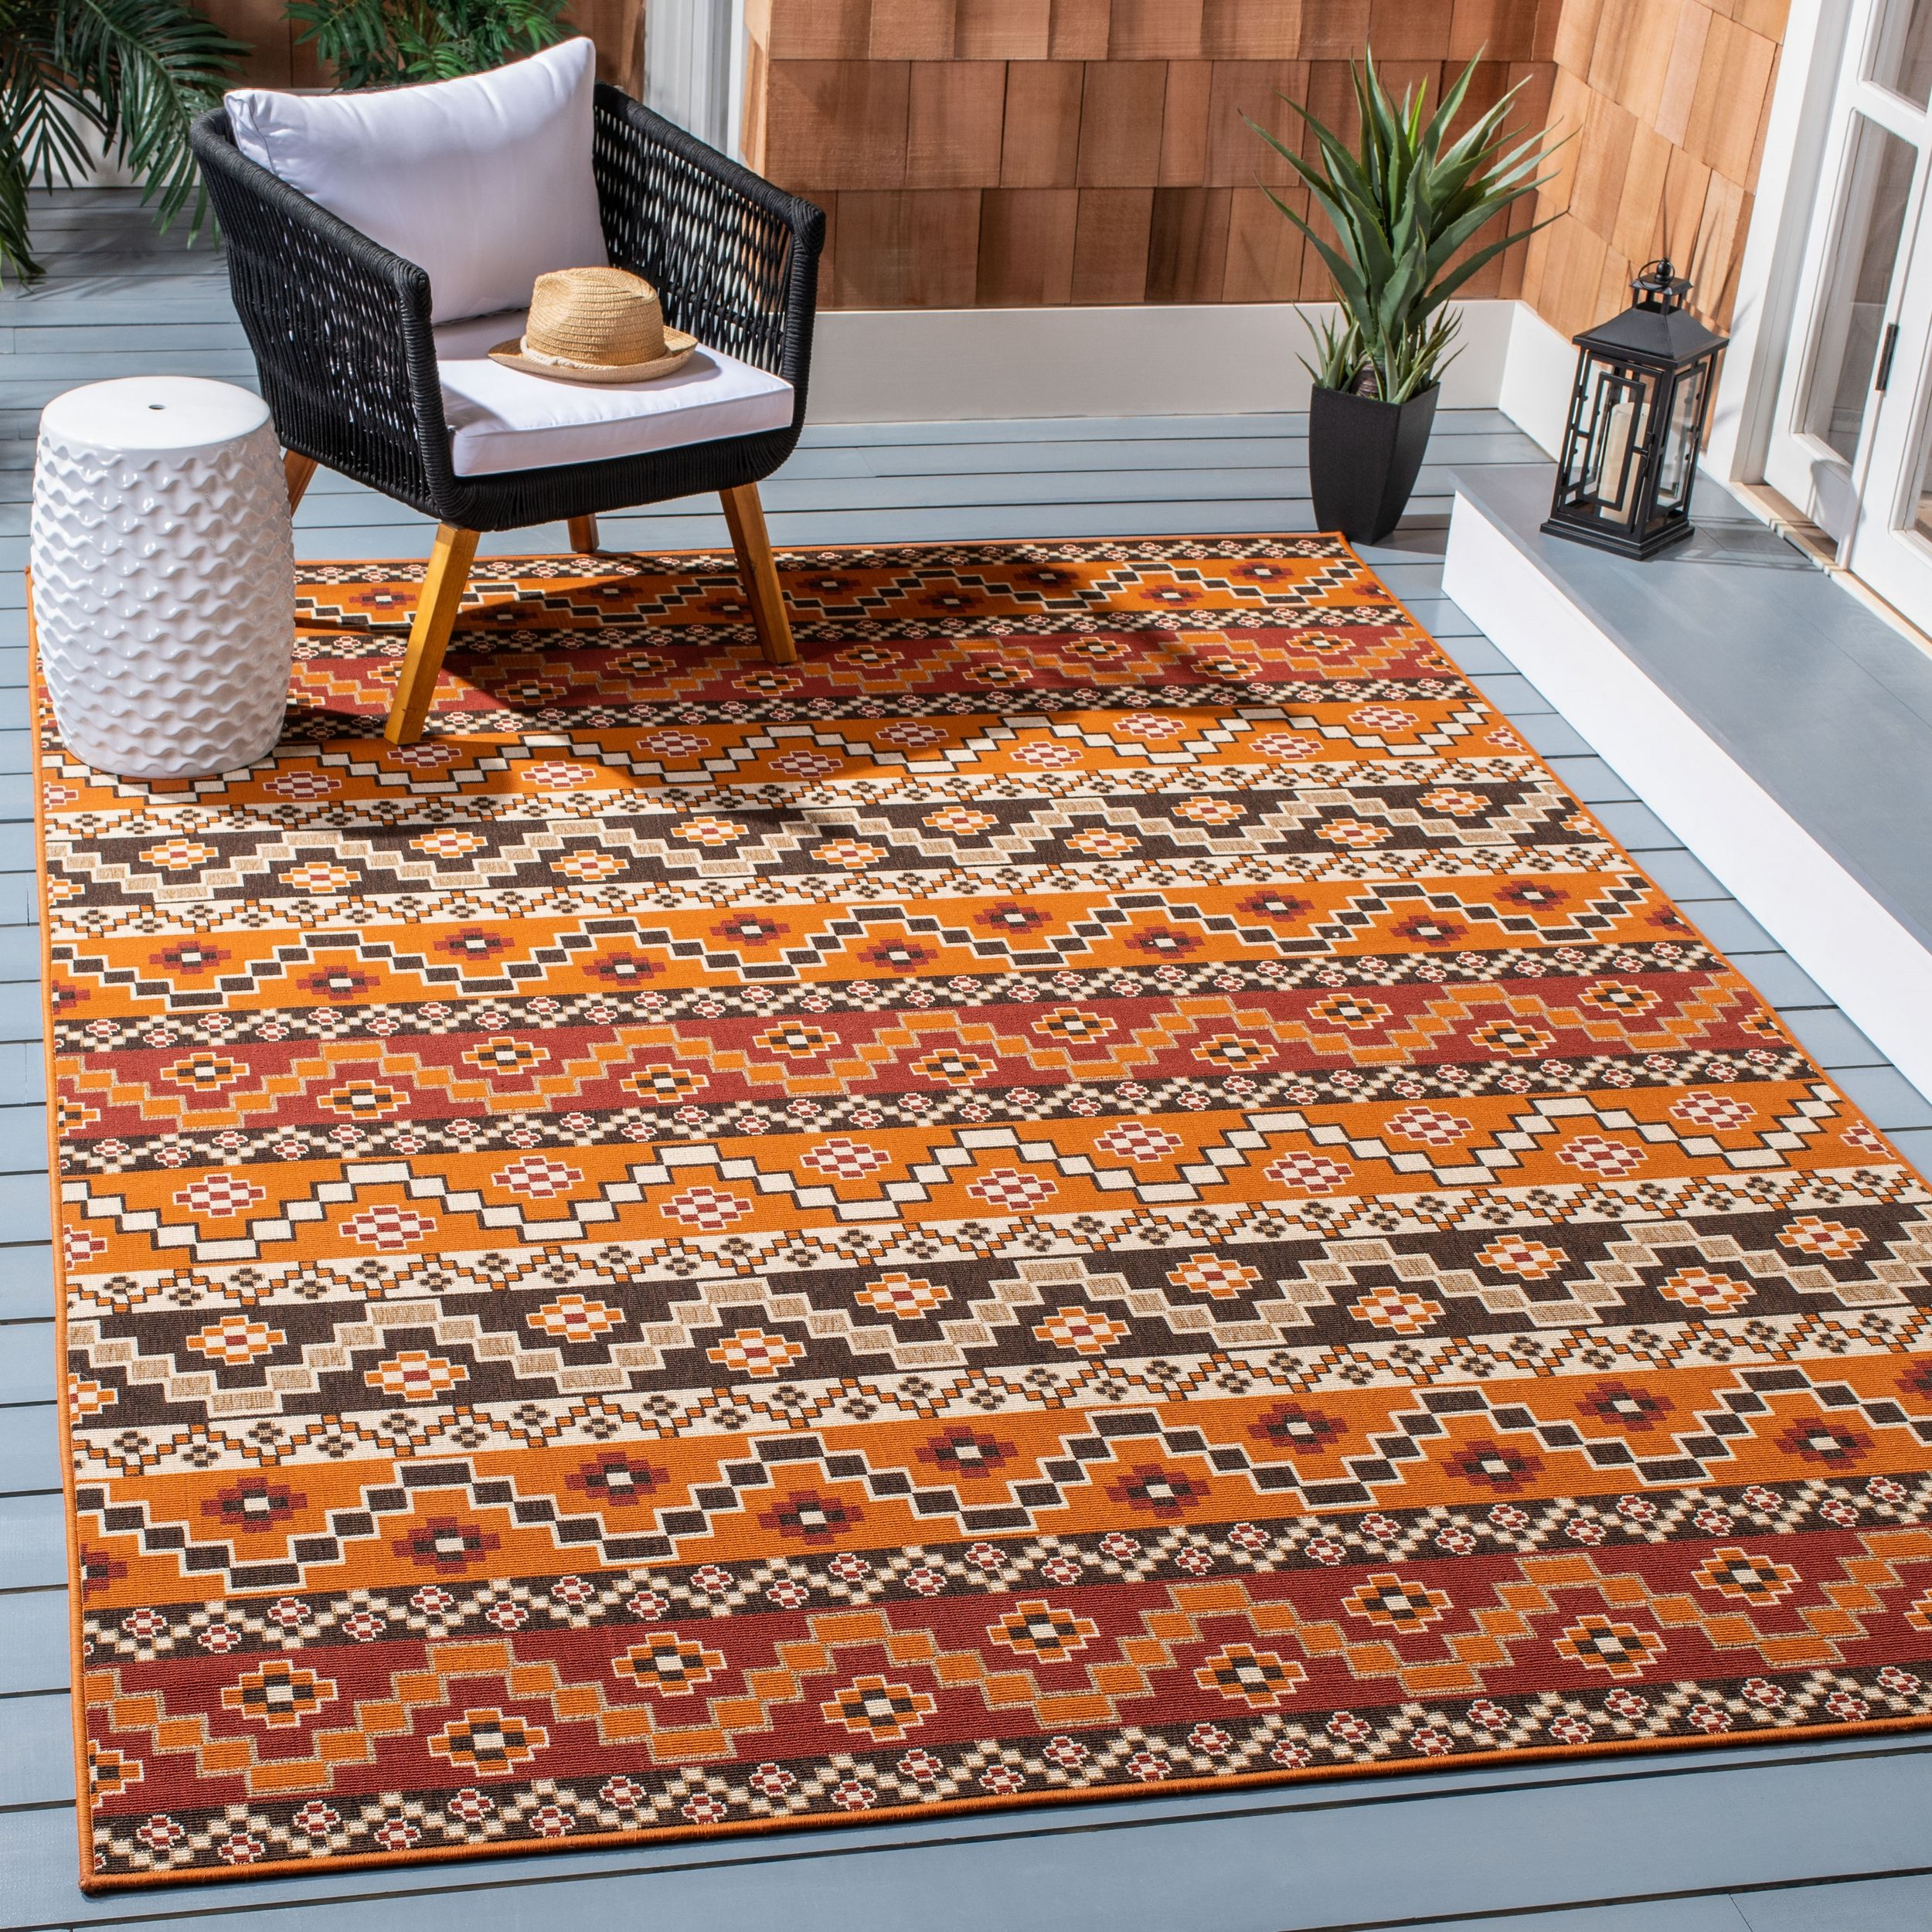 Safavieh Veranda Luwig Southwestern Indoor Outdoor Area Rug Or Runner Walmart Com Outdoor Rugs Indoor Outdoor Area Rugs Indoor Outdoor Rugs